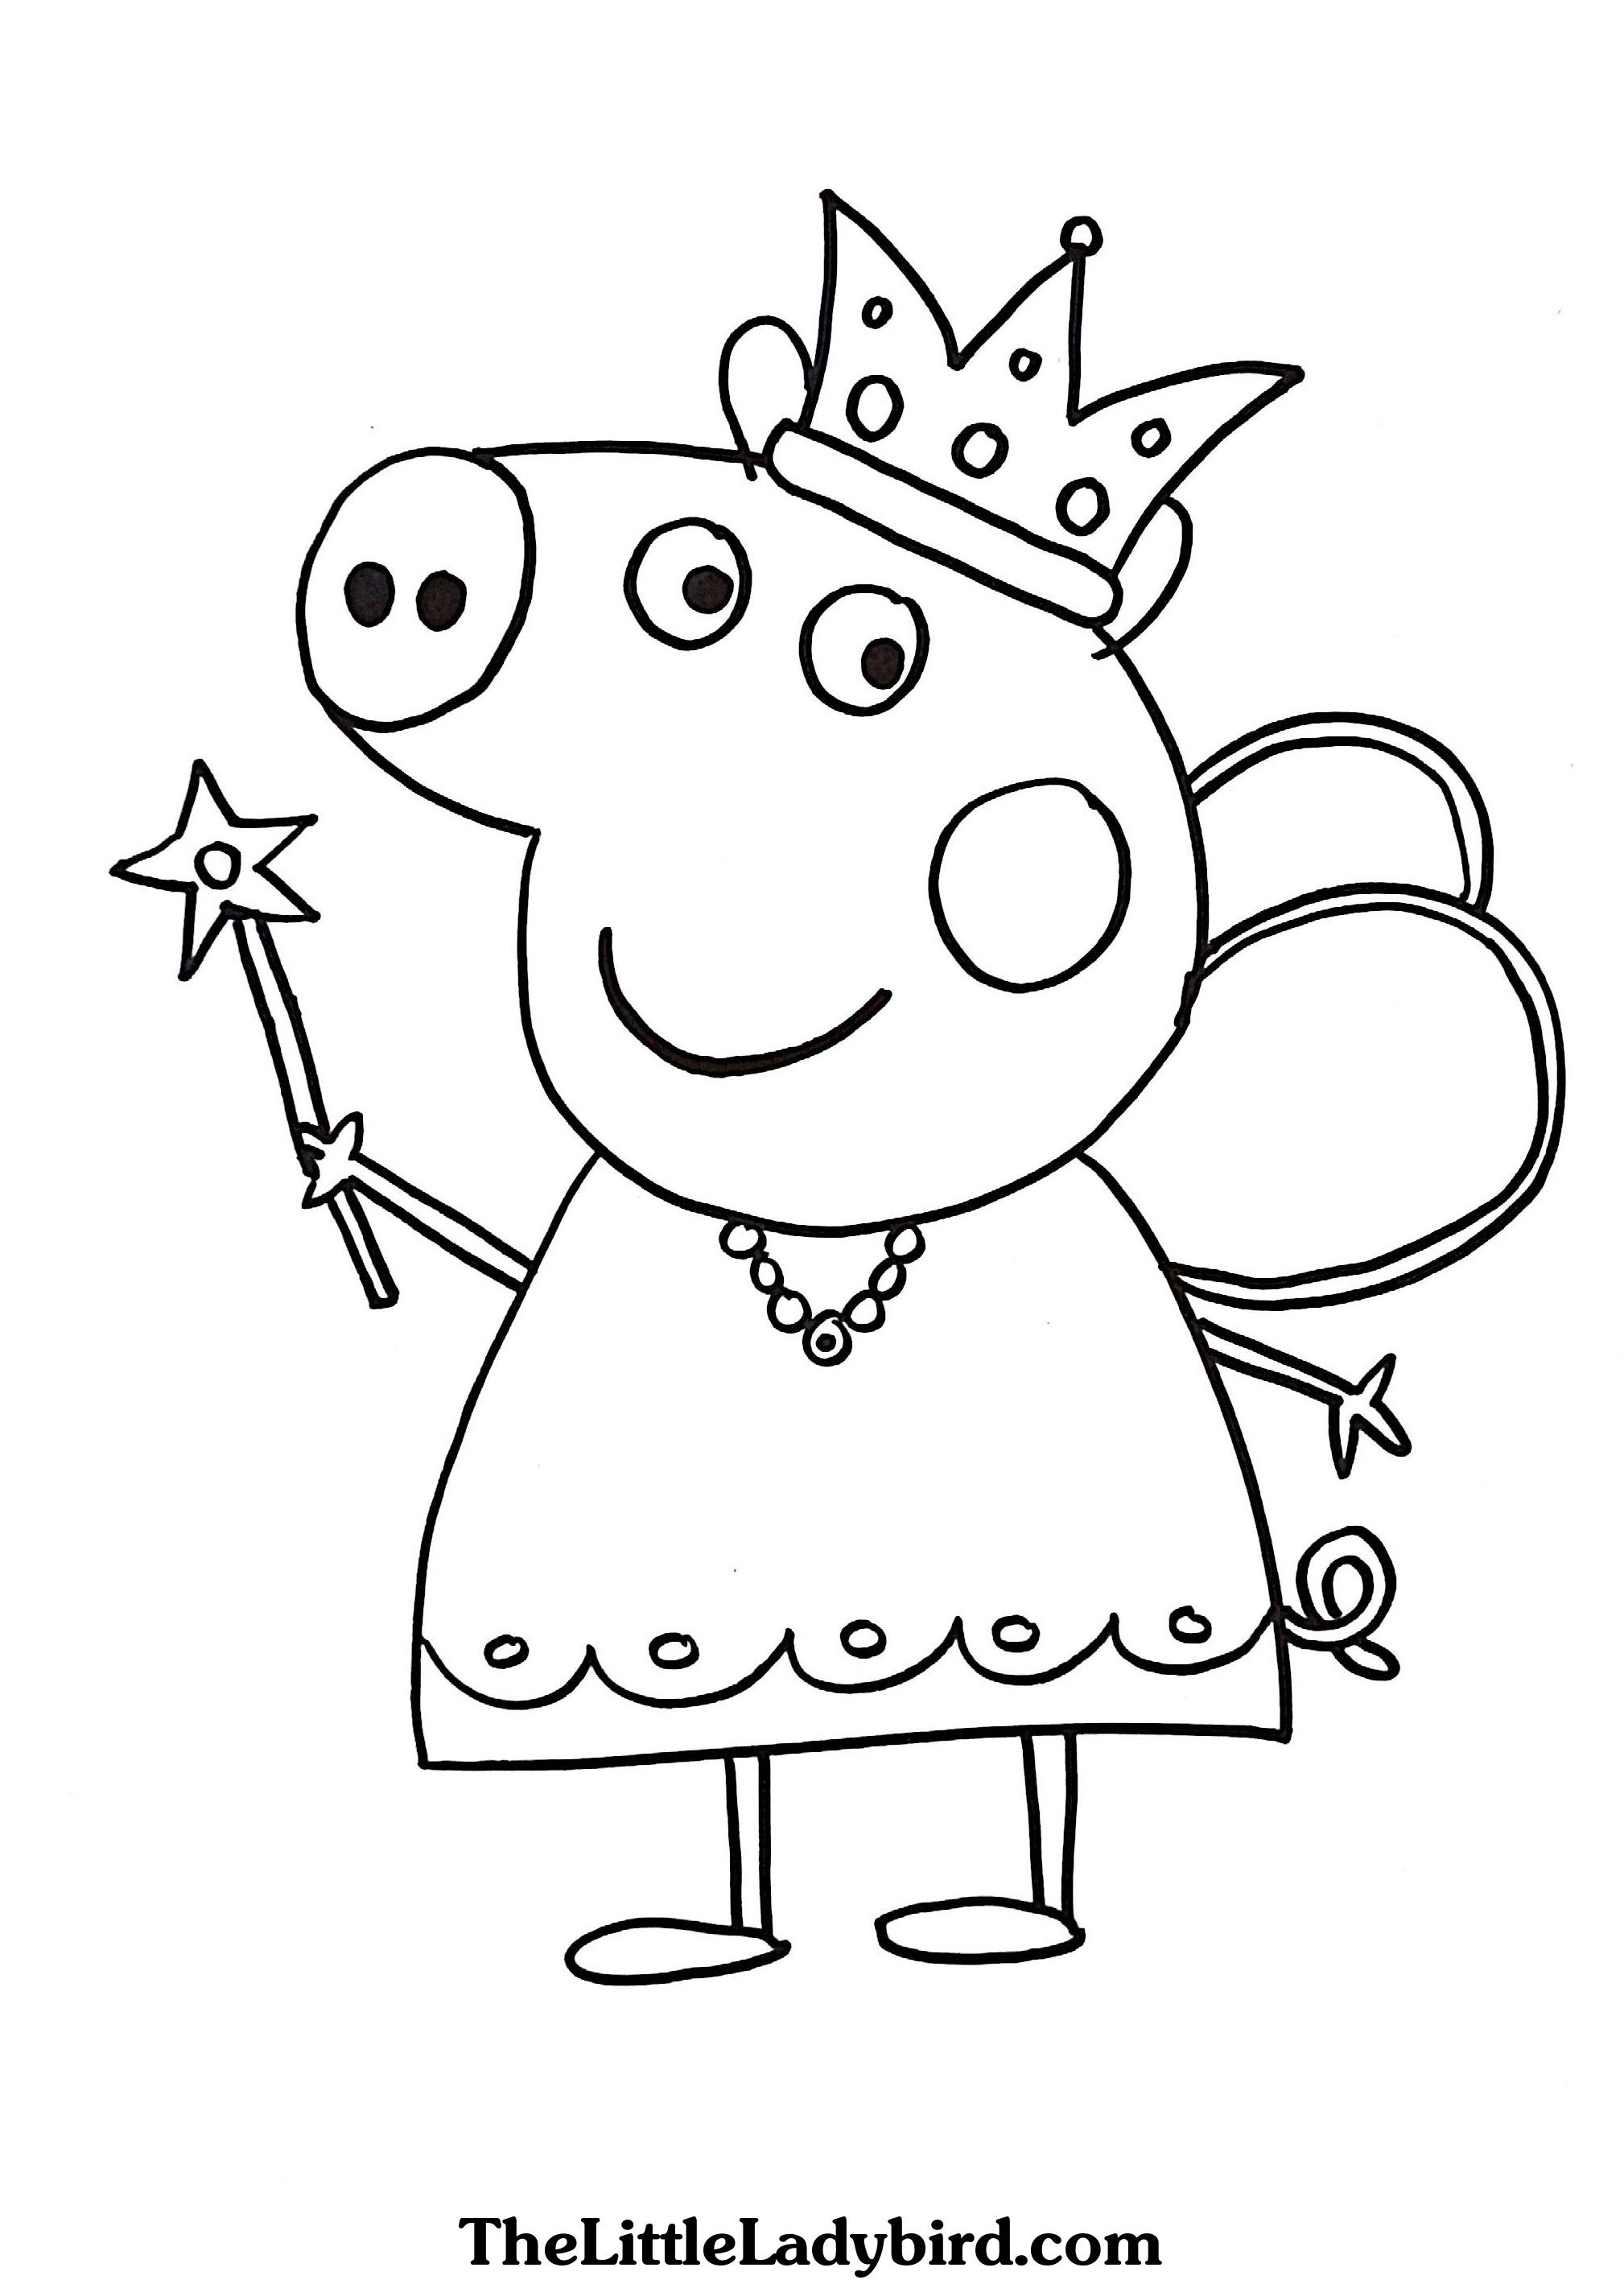 Peppa Pig Queen Coloring Pages Peppa Pig Queen Coloring Pages Peppa Pig Colouring Peppa Pig Coloring Pages Cartoon Coloring Pages [ 2838 x 2018 Pixel ]